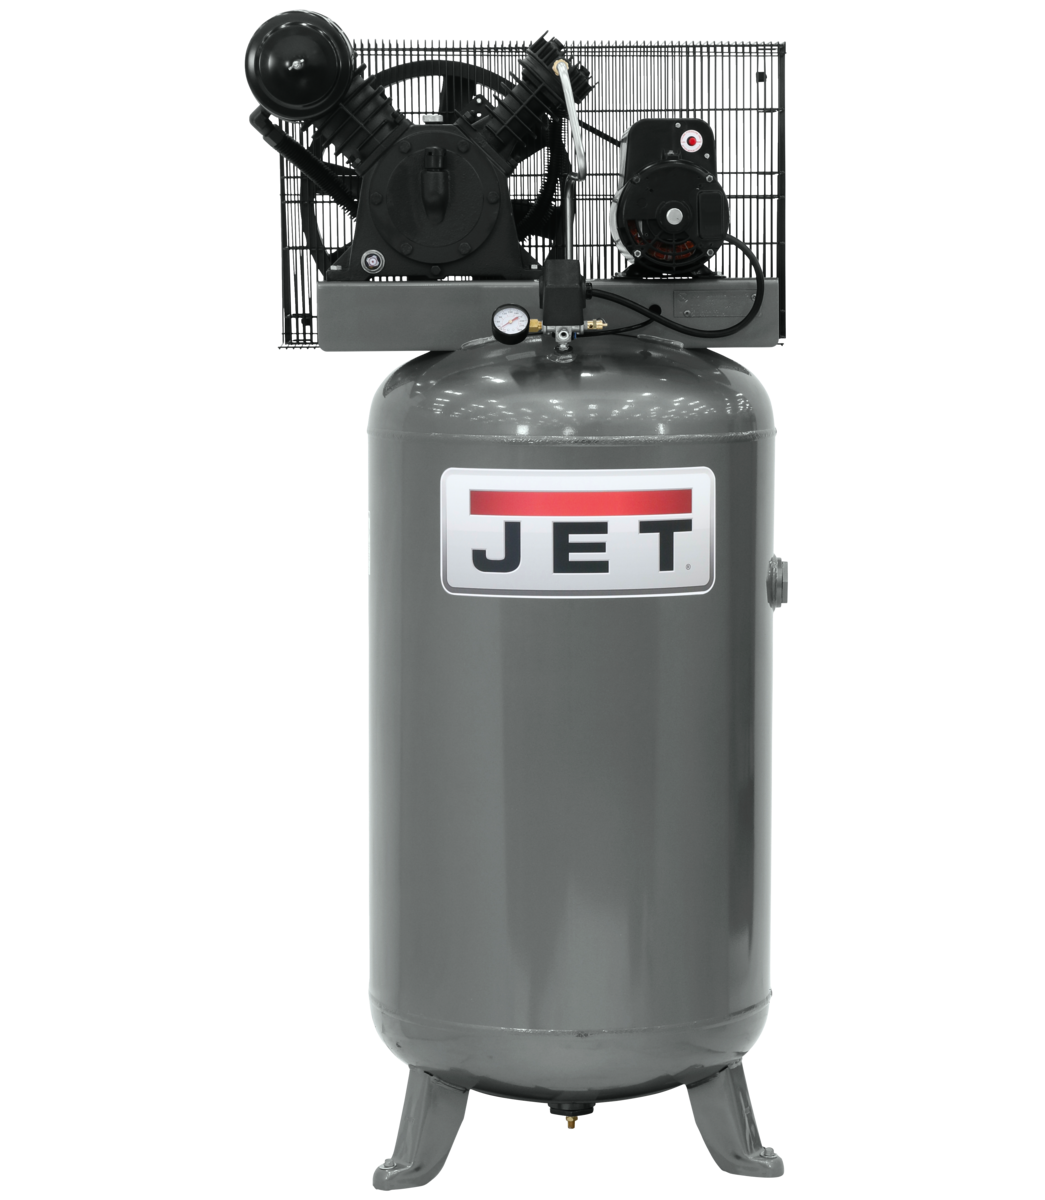 JCP-801, 80 Gallon Vertical Air Compressor